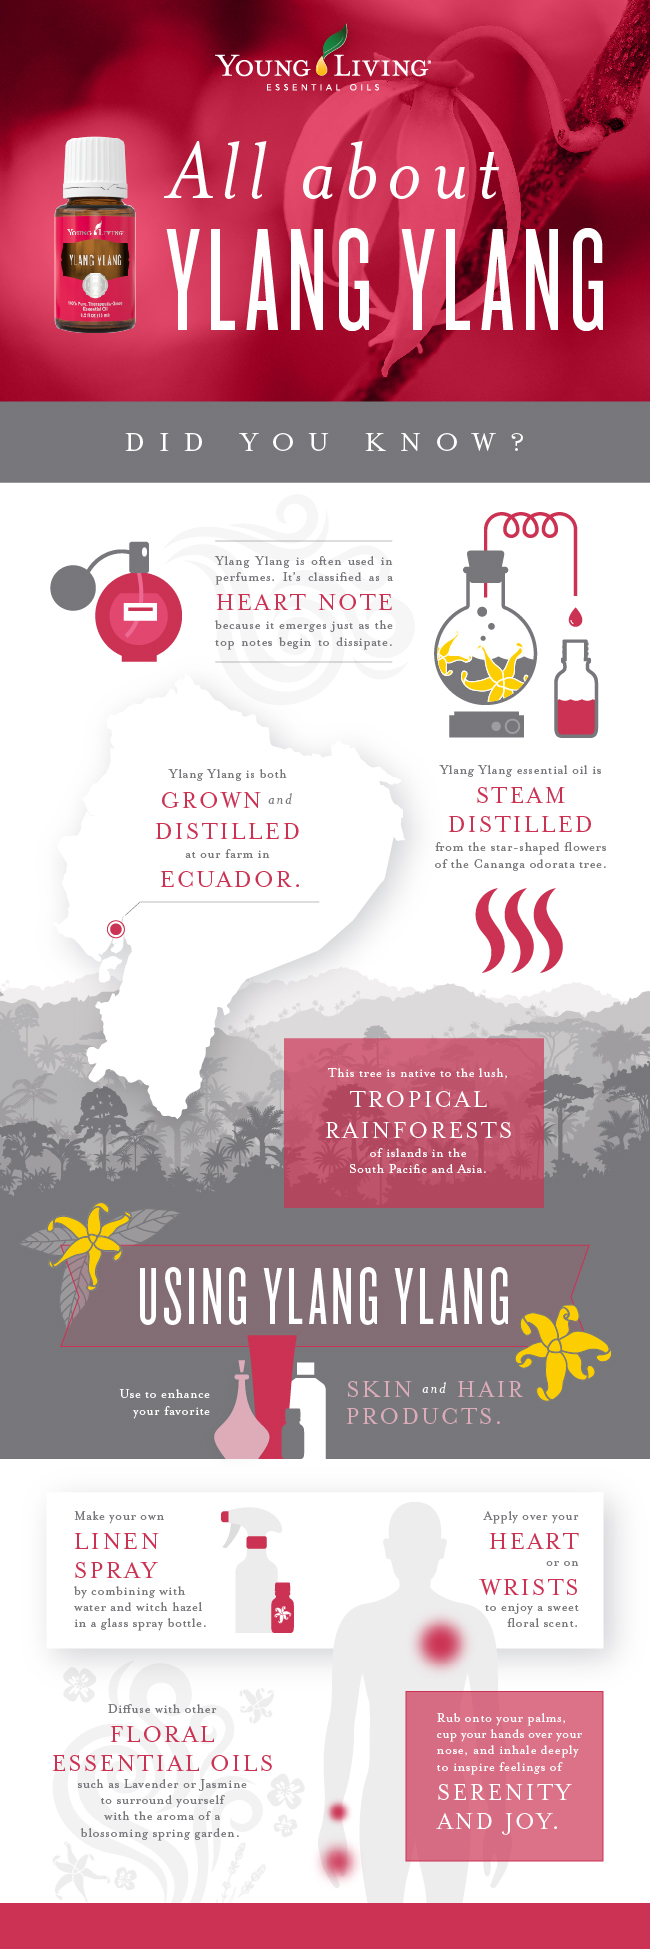 blog_AllAboutYlangYlang_infographic_US-01-1